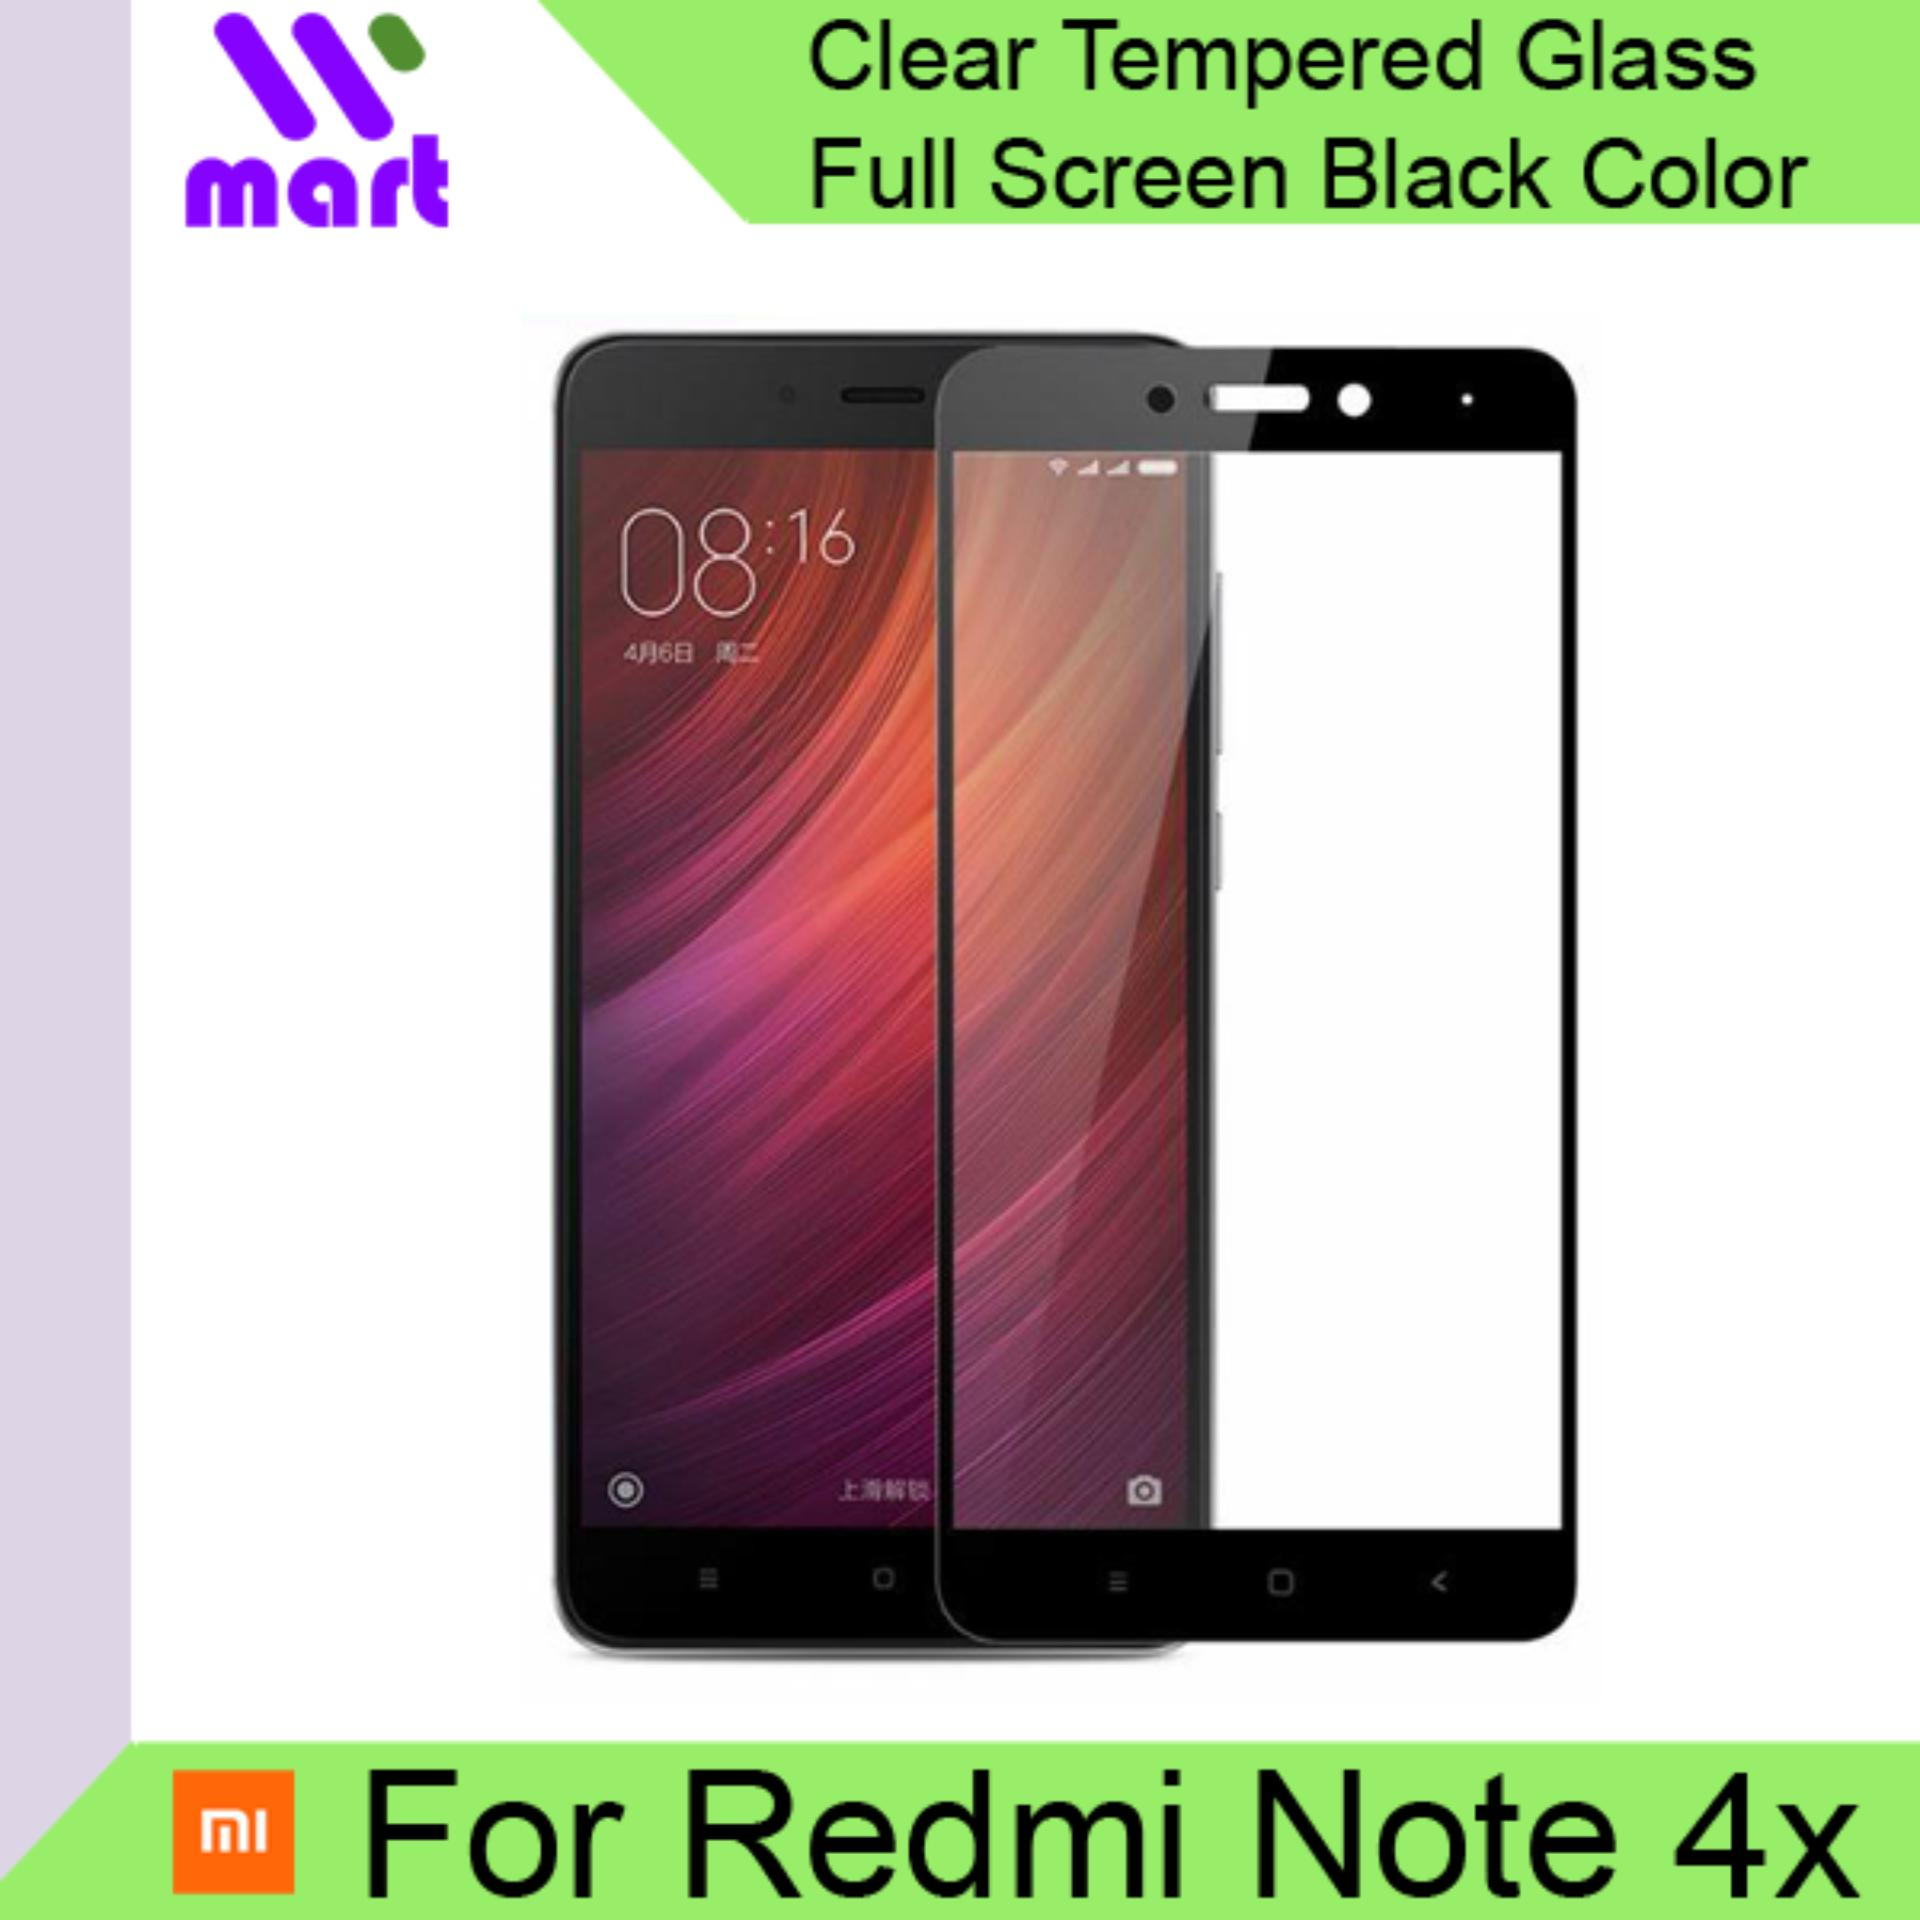 Full Screen Tempered Glass Screen Protector (Black) For Xiaomi Redmi Note 4x